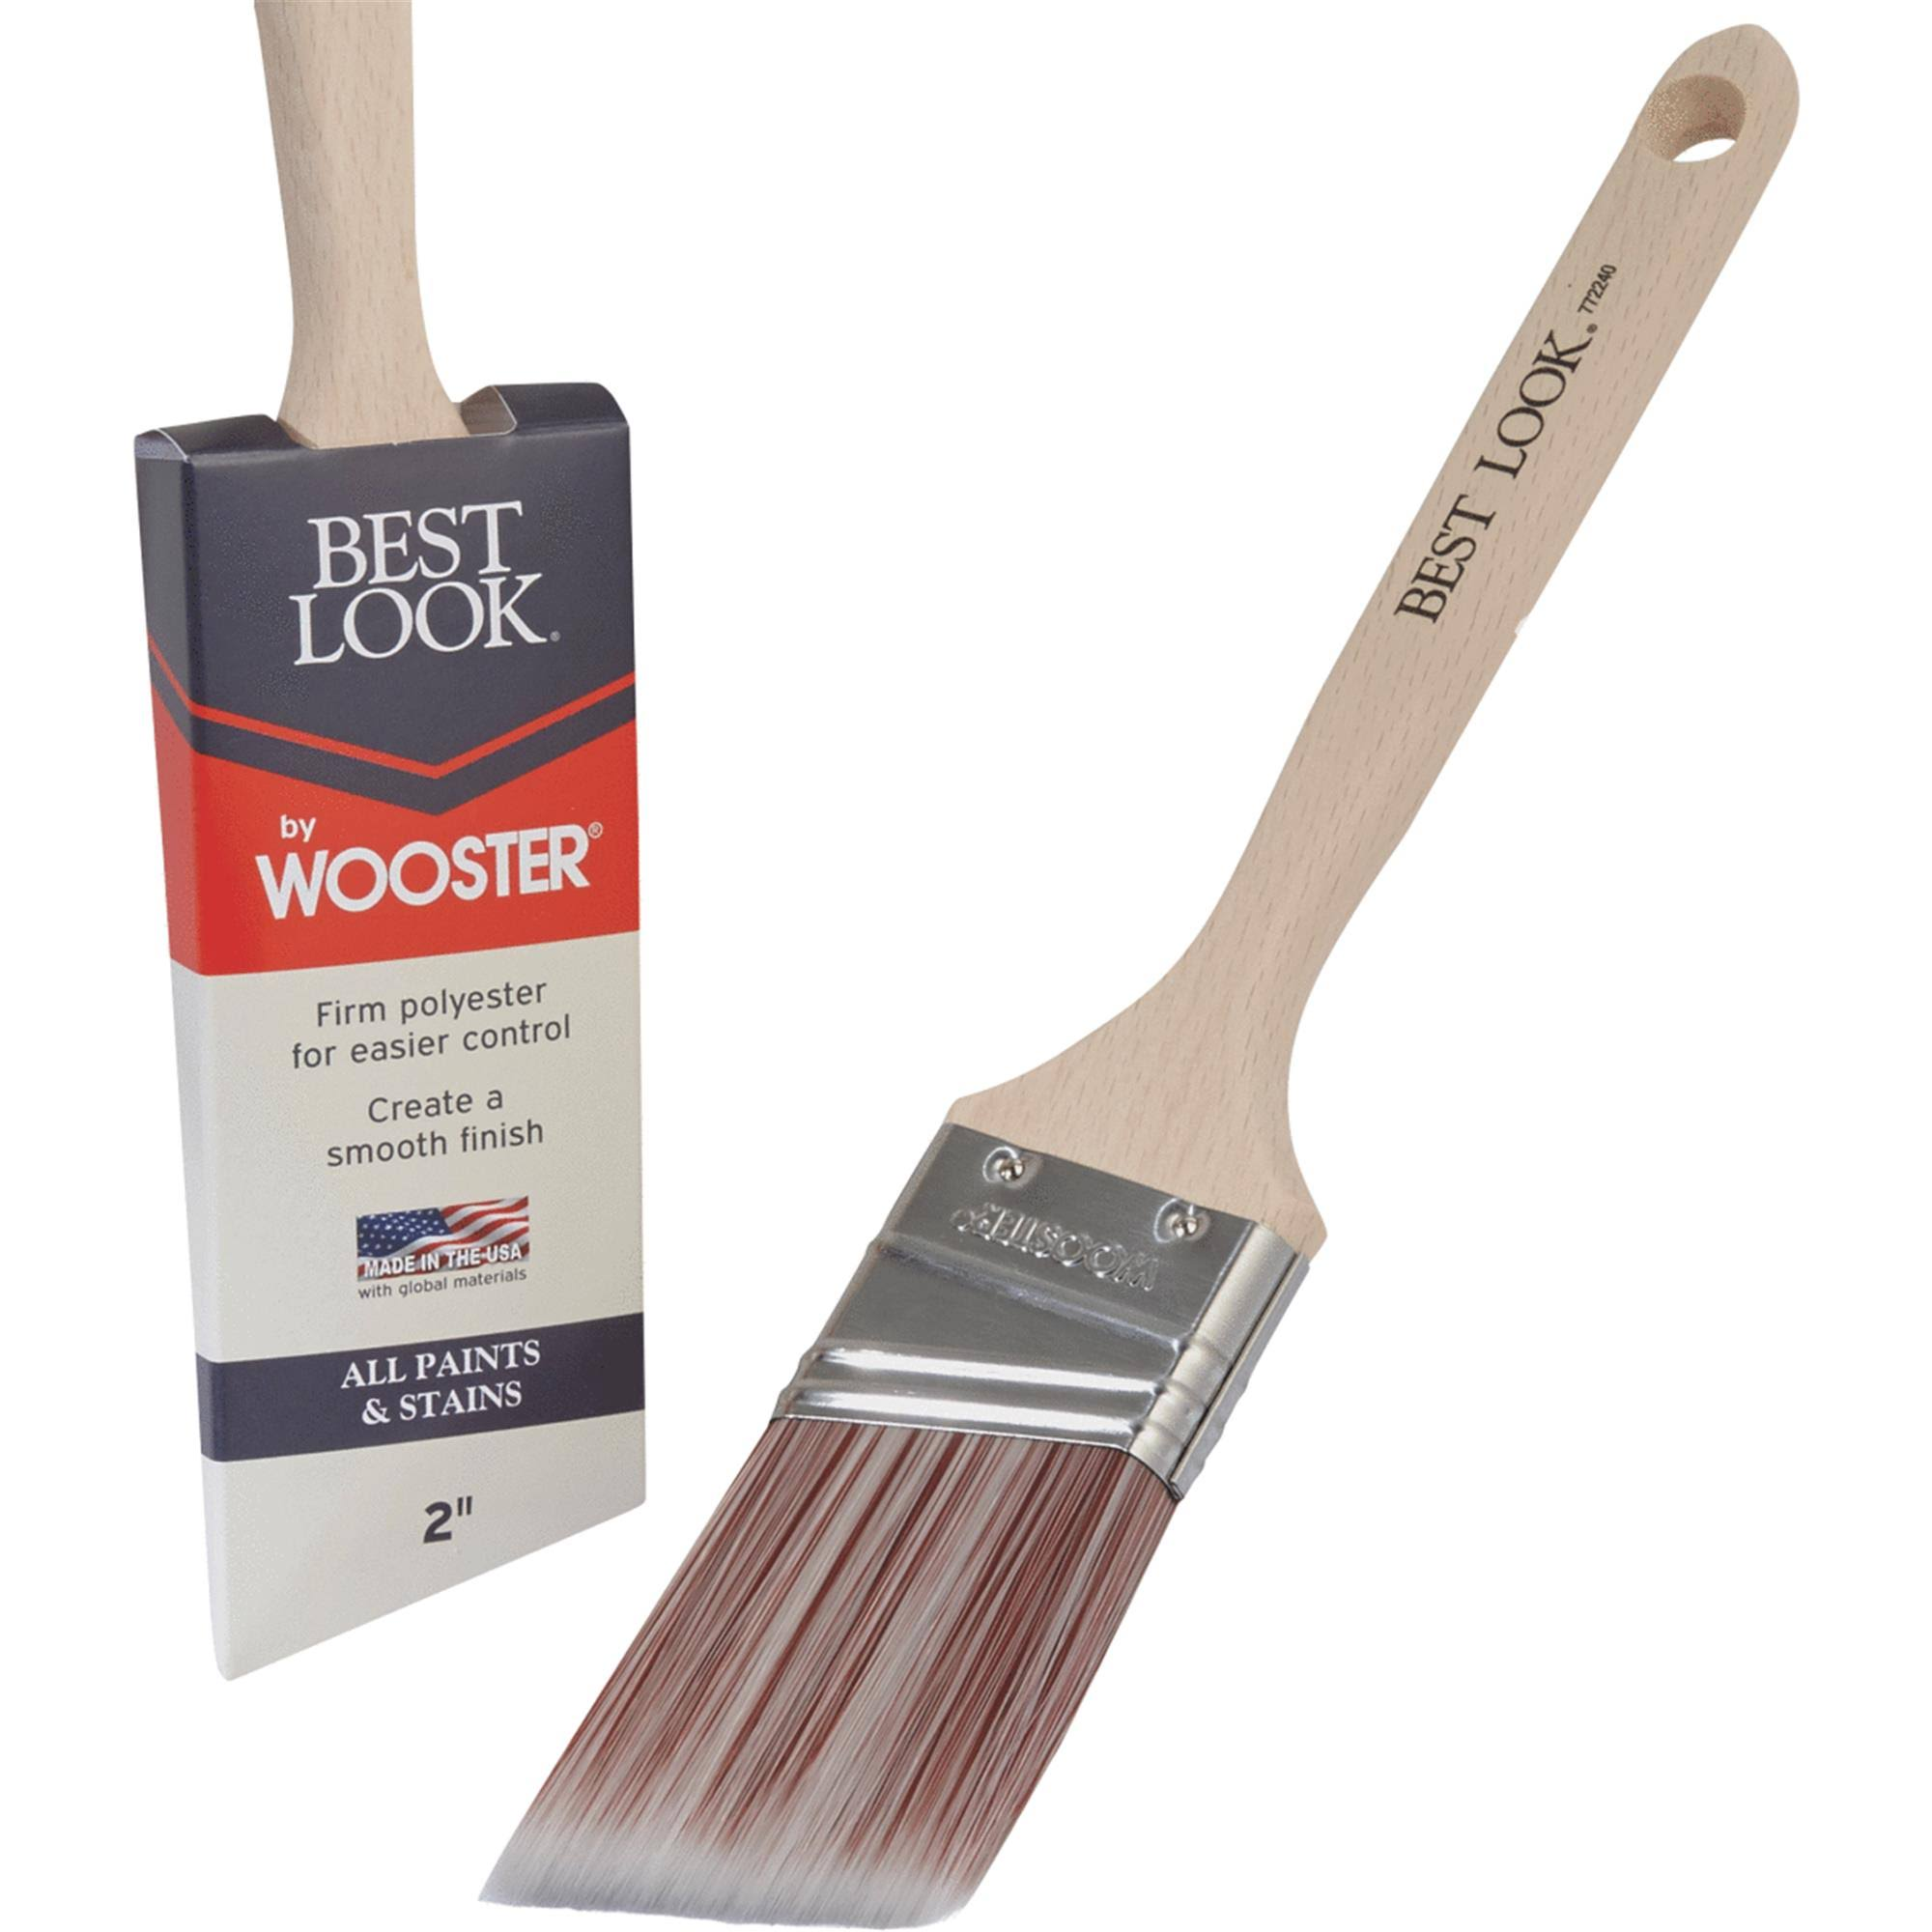 Best Look by Wooster Polyester Paint Brush - D4022-2